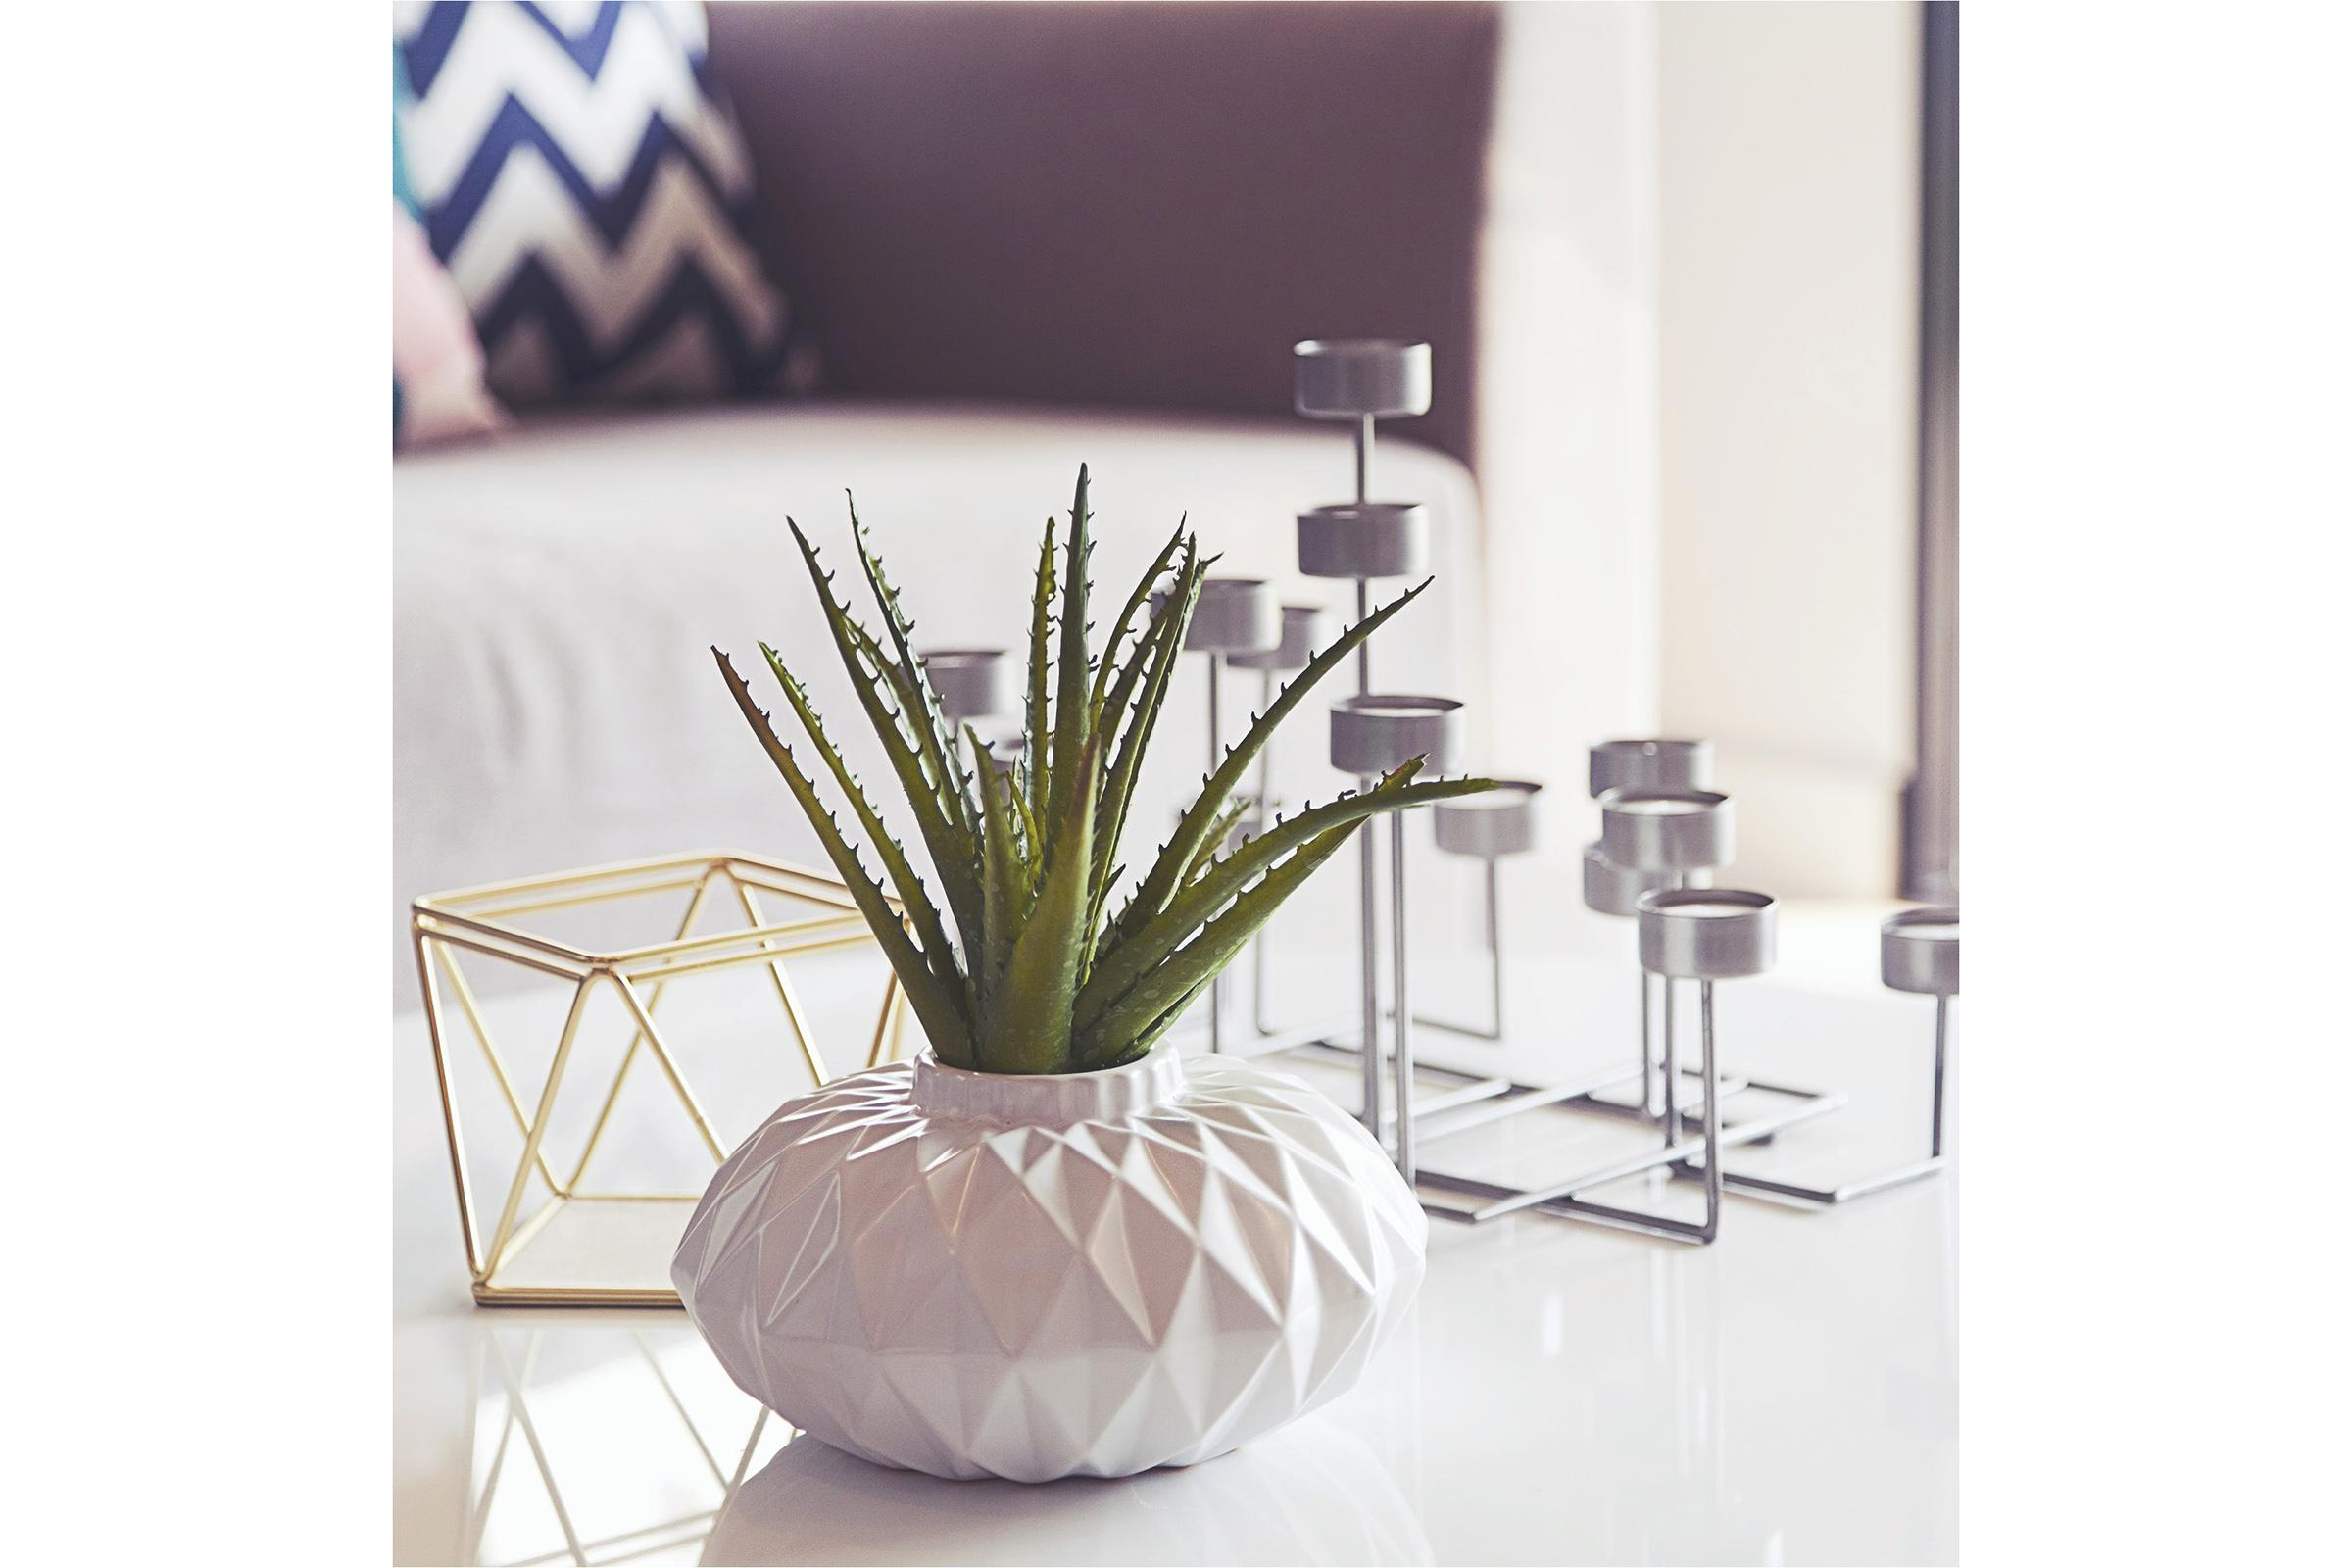 a glass vase on a table